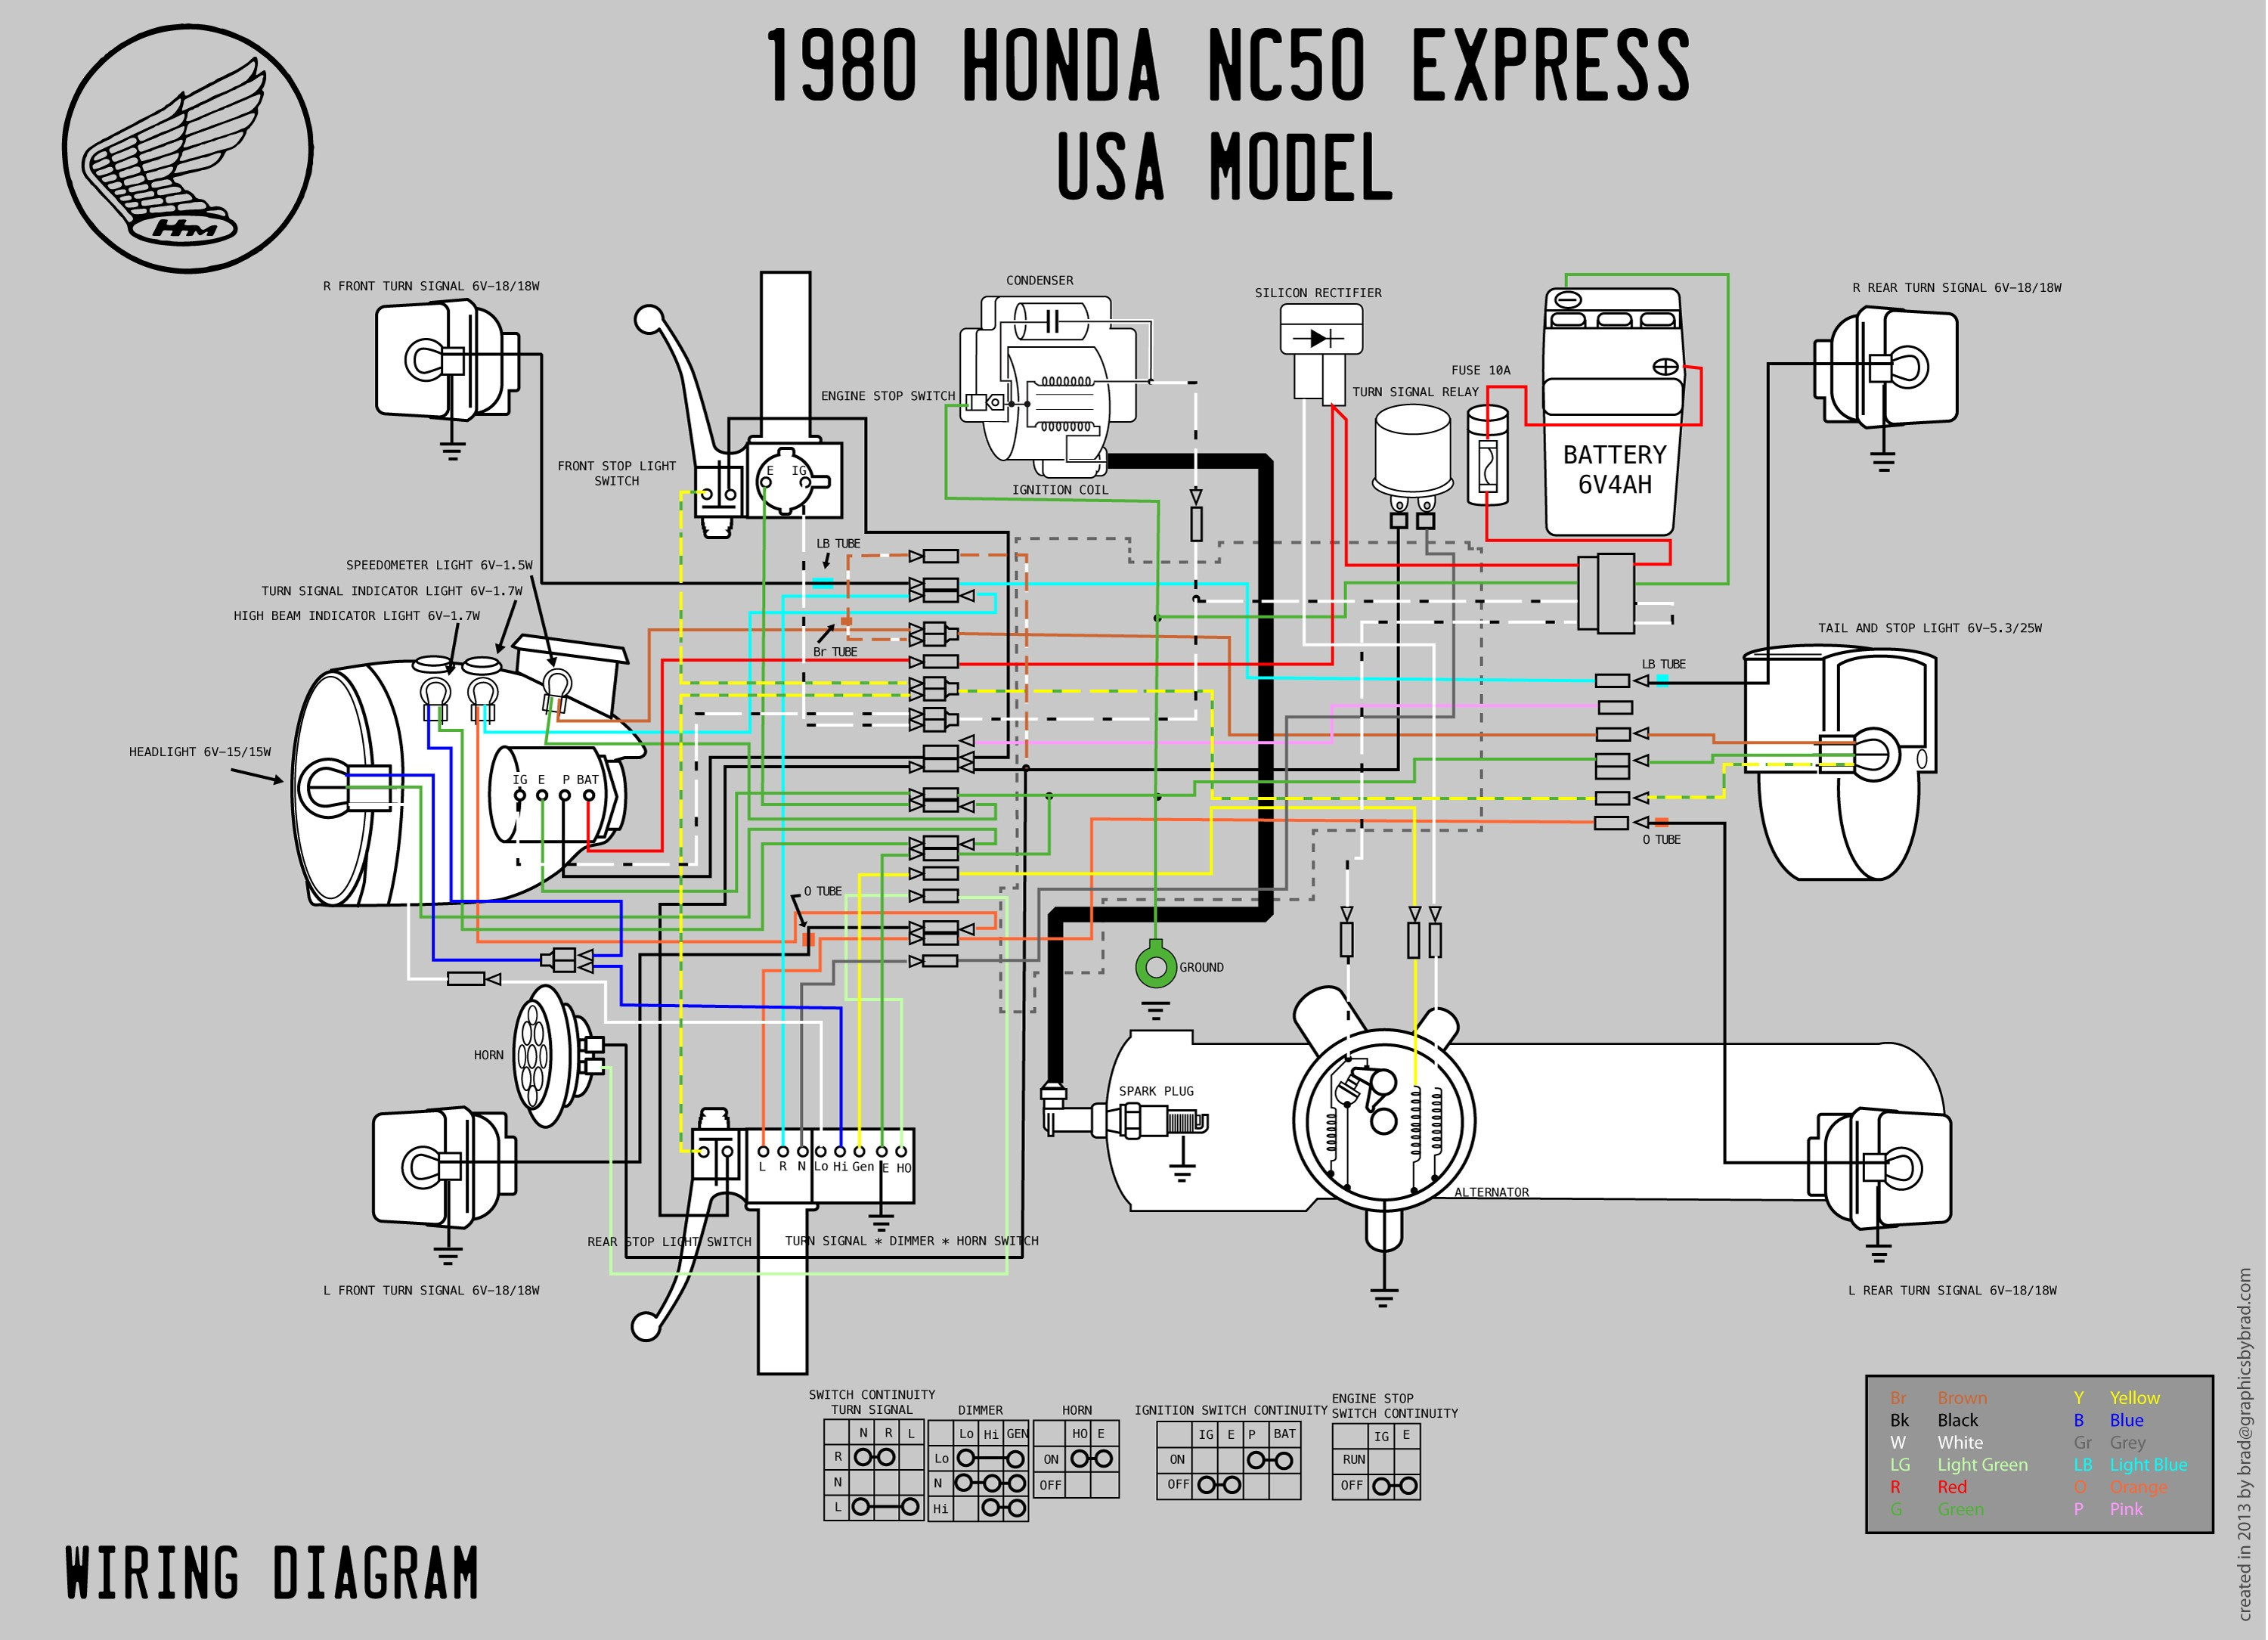 Honda Nc50 Wiring Harness | Repair Manual on